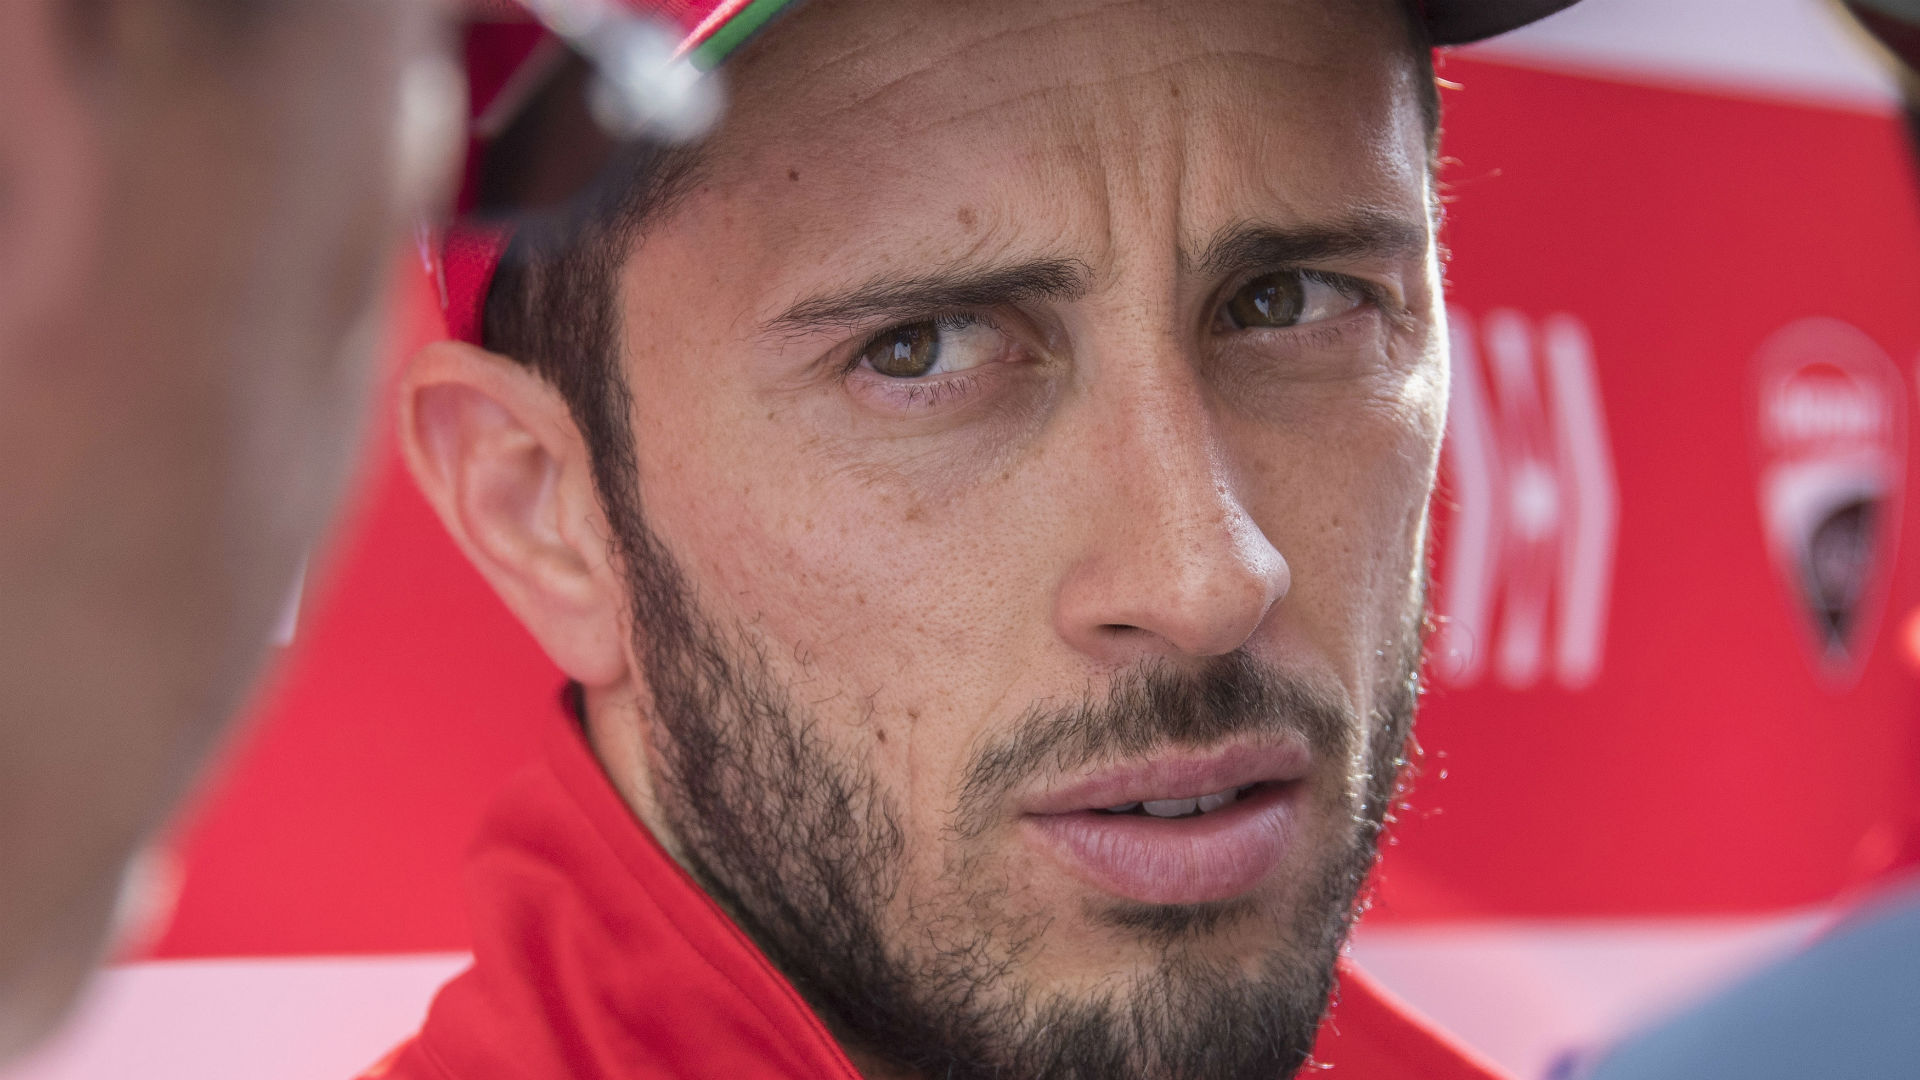 DTM will be boosted by an appearance from MotoGP rider Andrea Dovizioso when it heads to Misano in June.